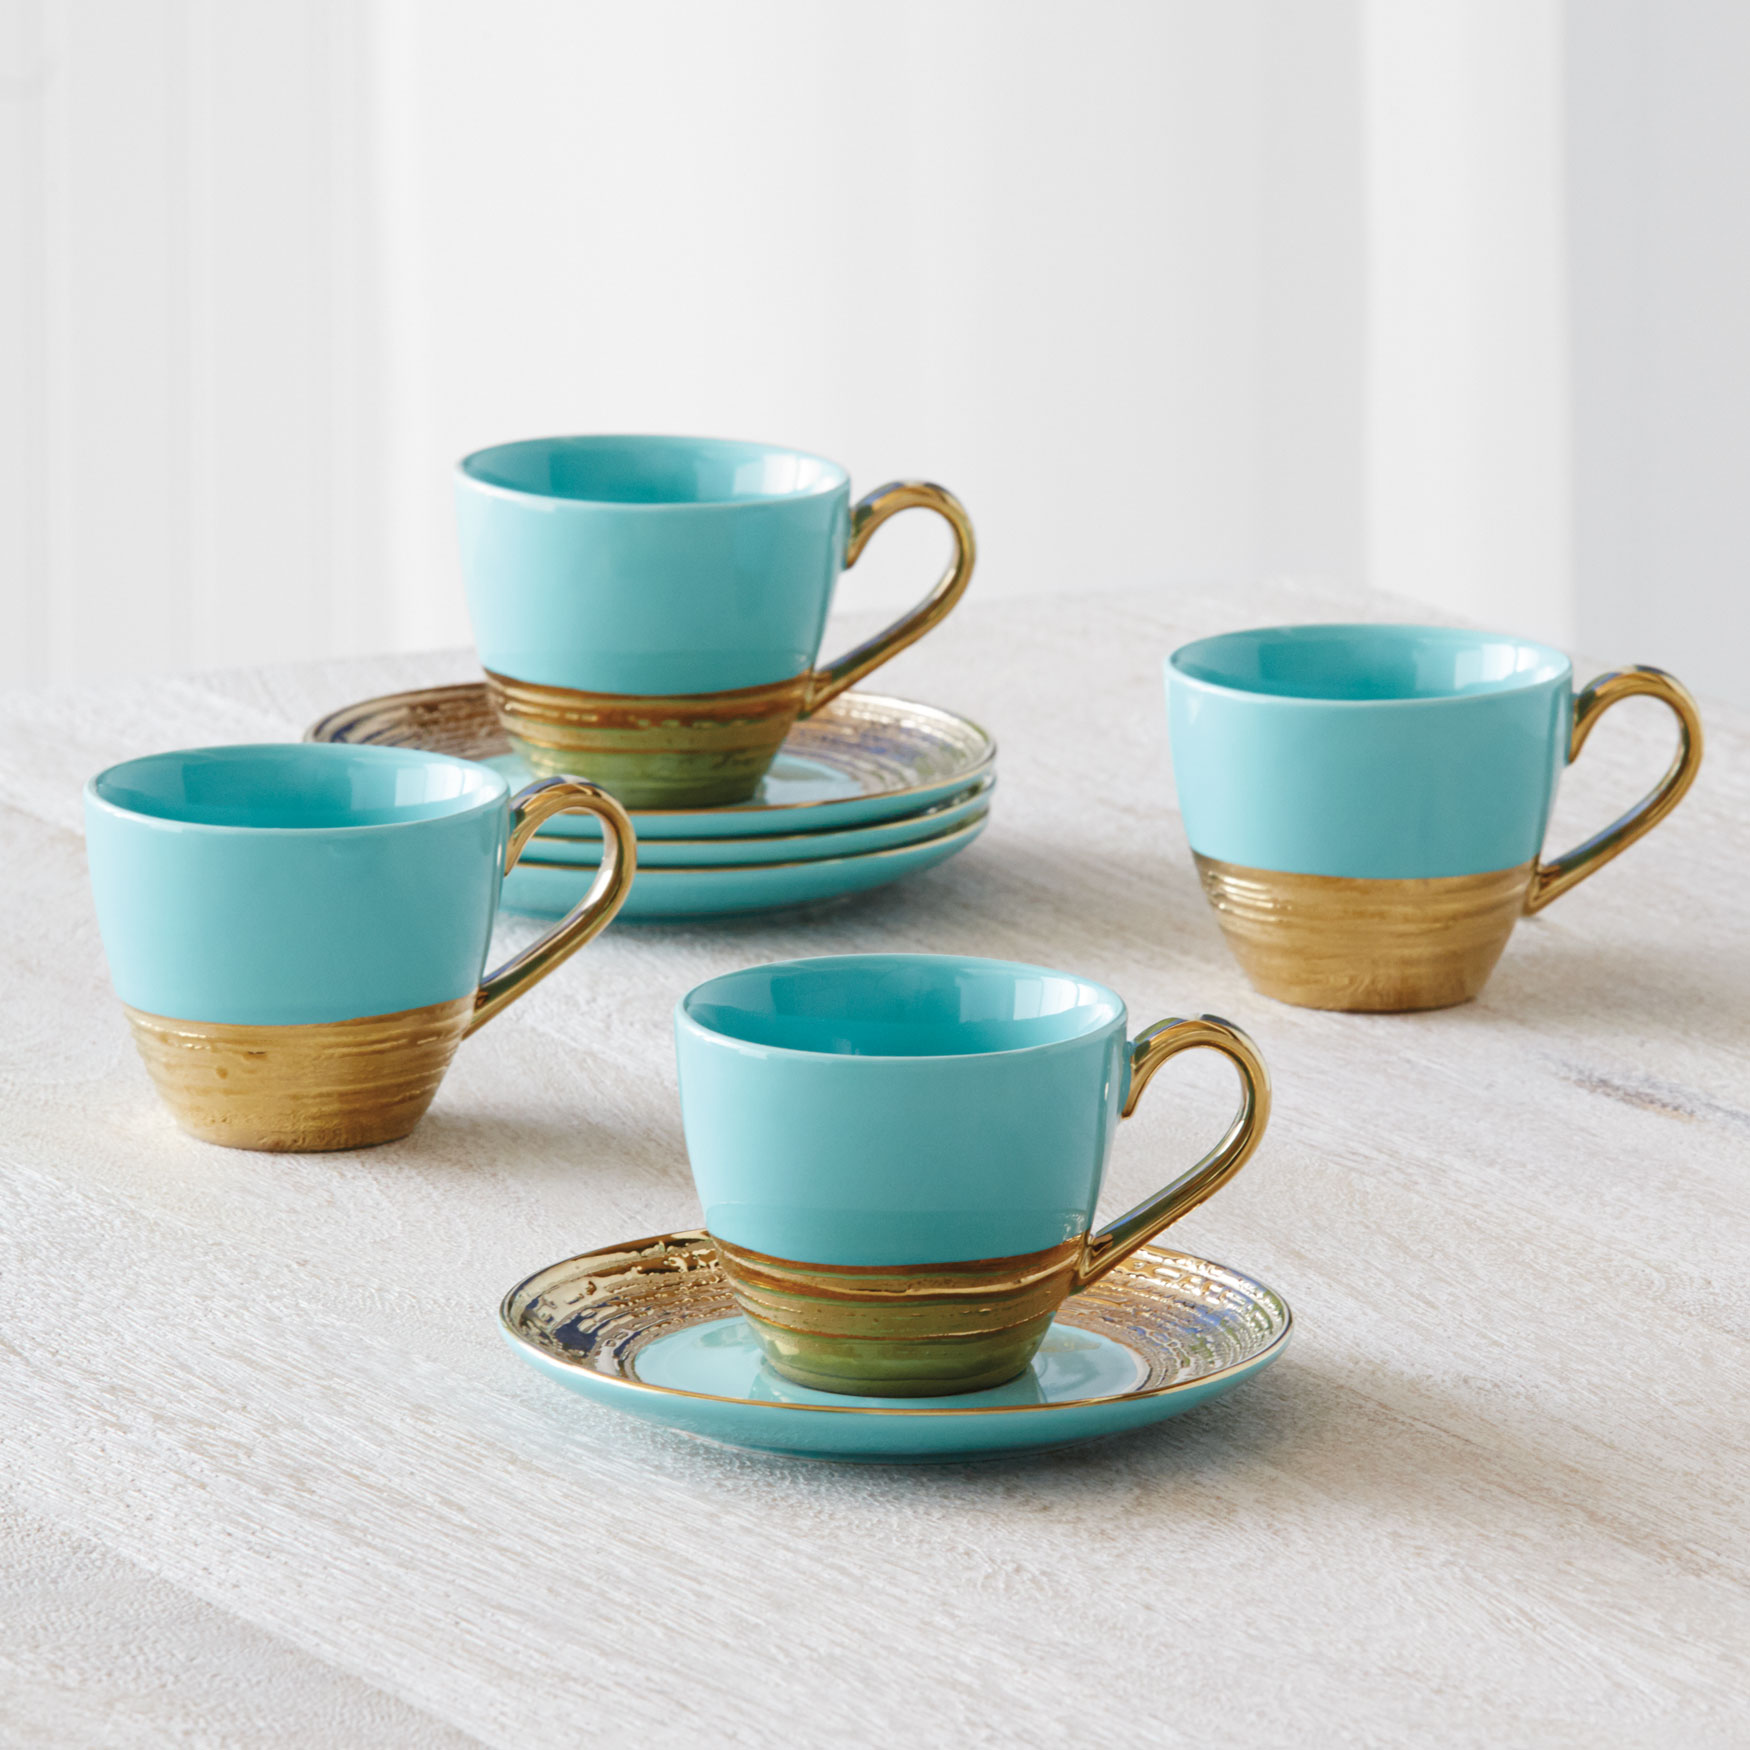 Embossed Gold Cups & Saucers, Set of 4, AQUA